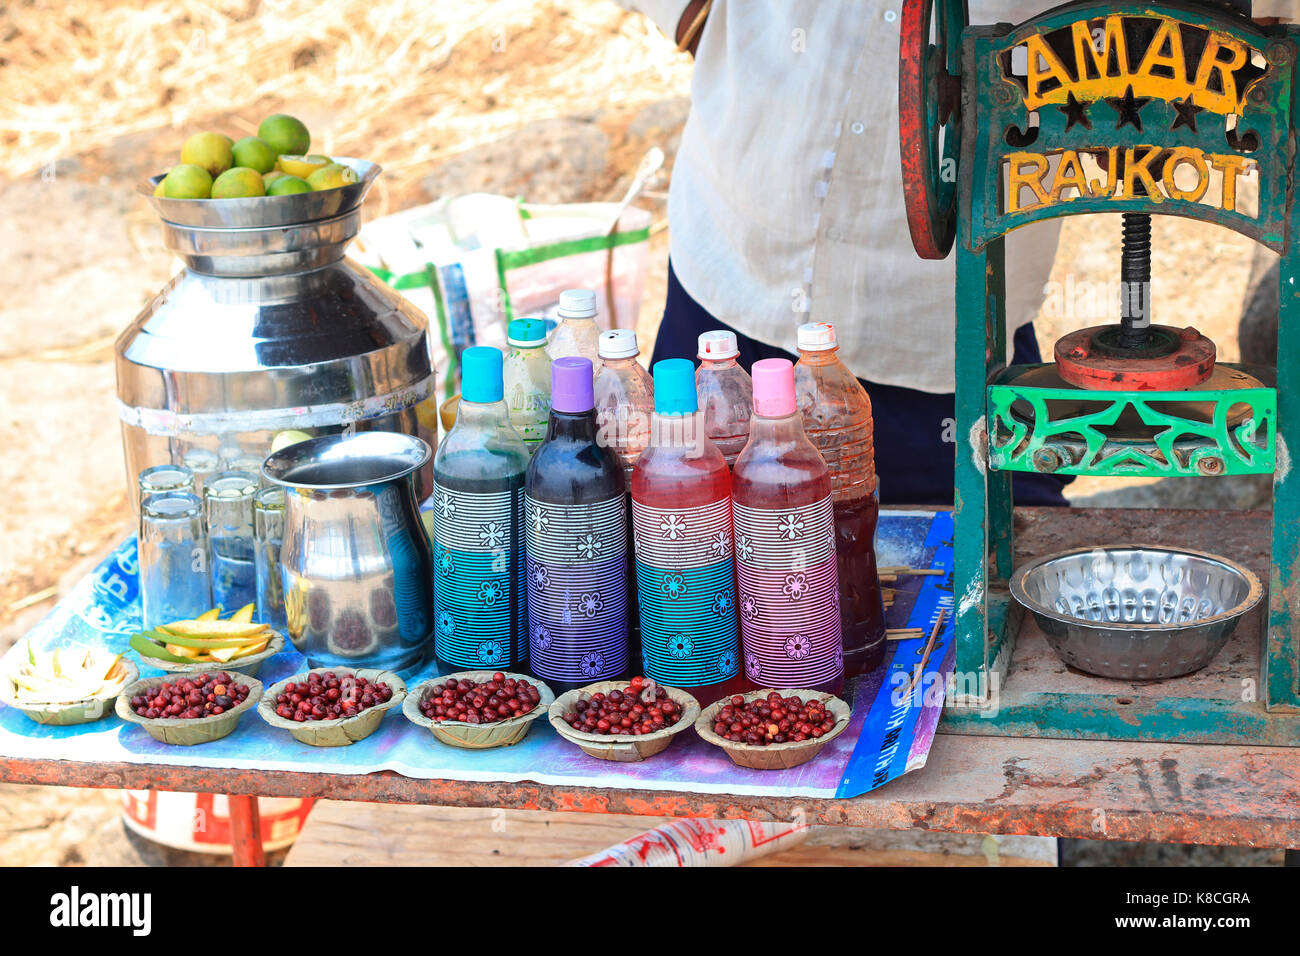 Vendor displaying raw mango cut pieces , red berries , cold drinks with a pop sickle machine on the side - Stock Image